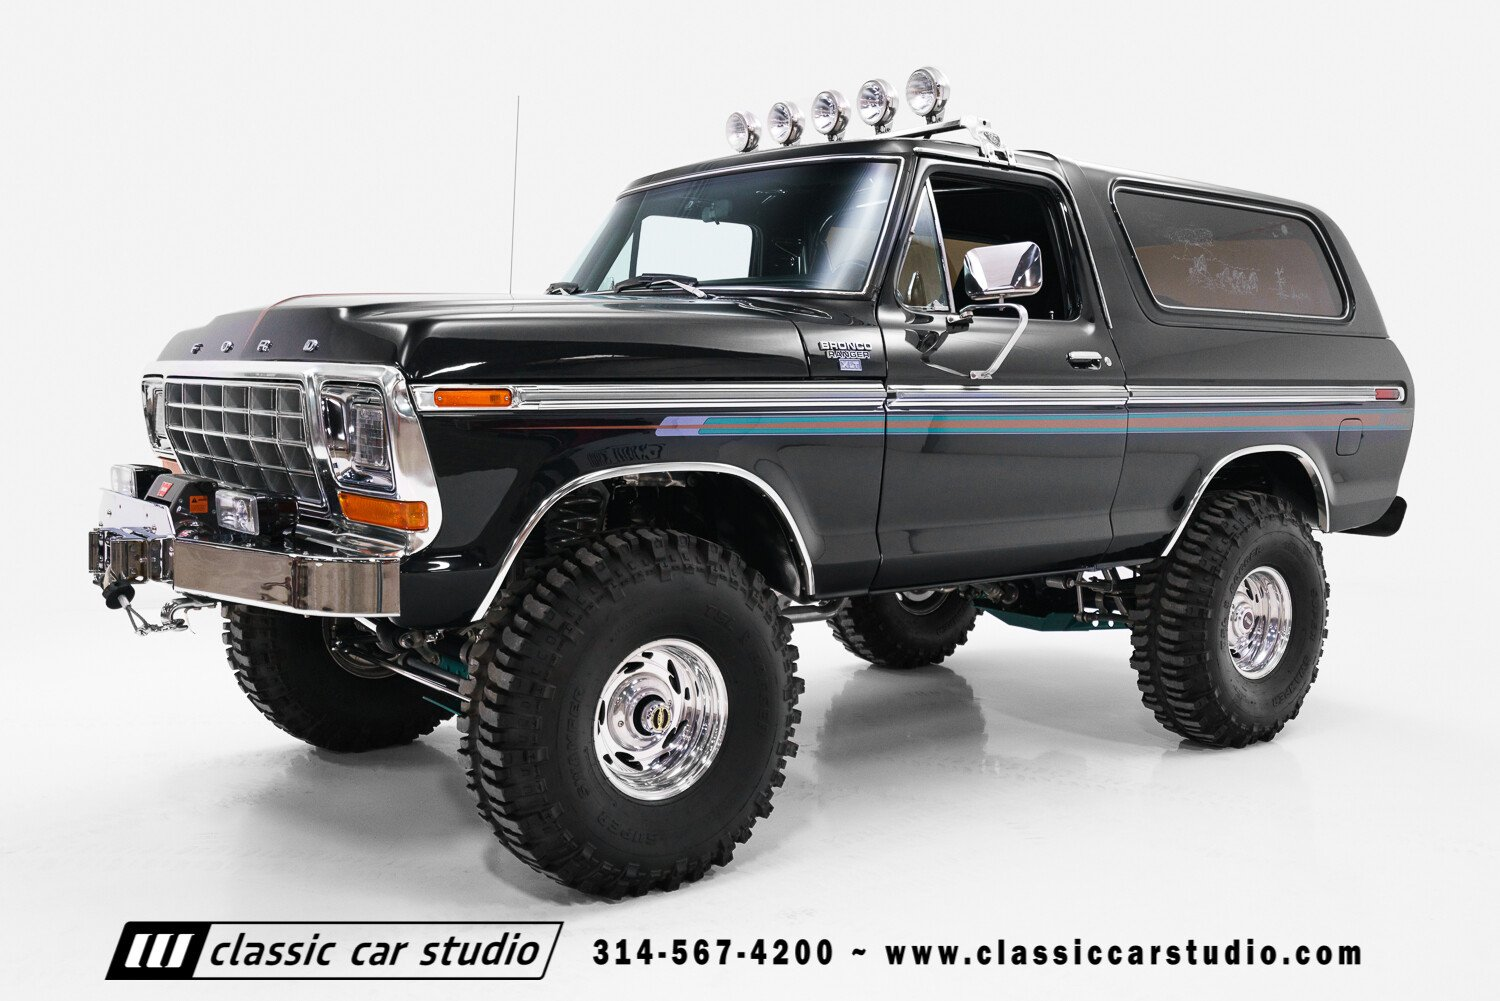 1978 Ford Bronco for sale 100856464 & Ford Bronco Classics for Sale - Classics on Autotrader markmcfarlin.com